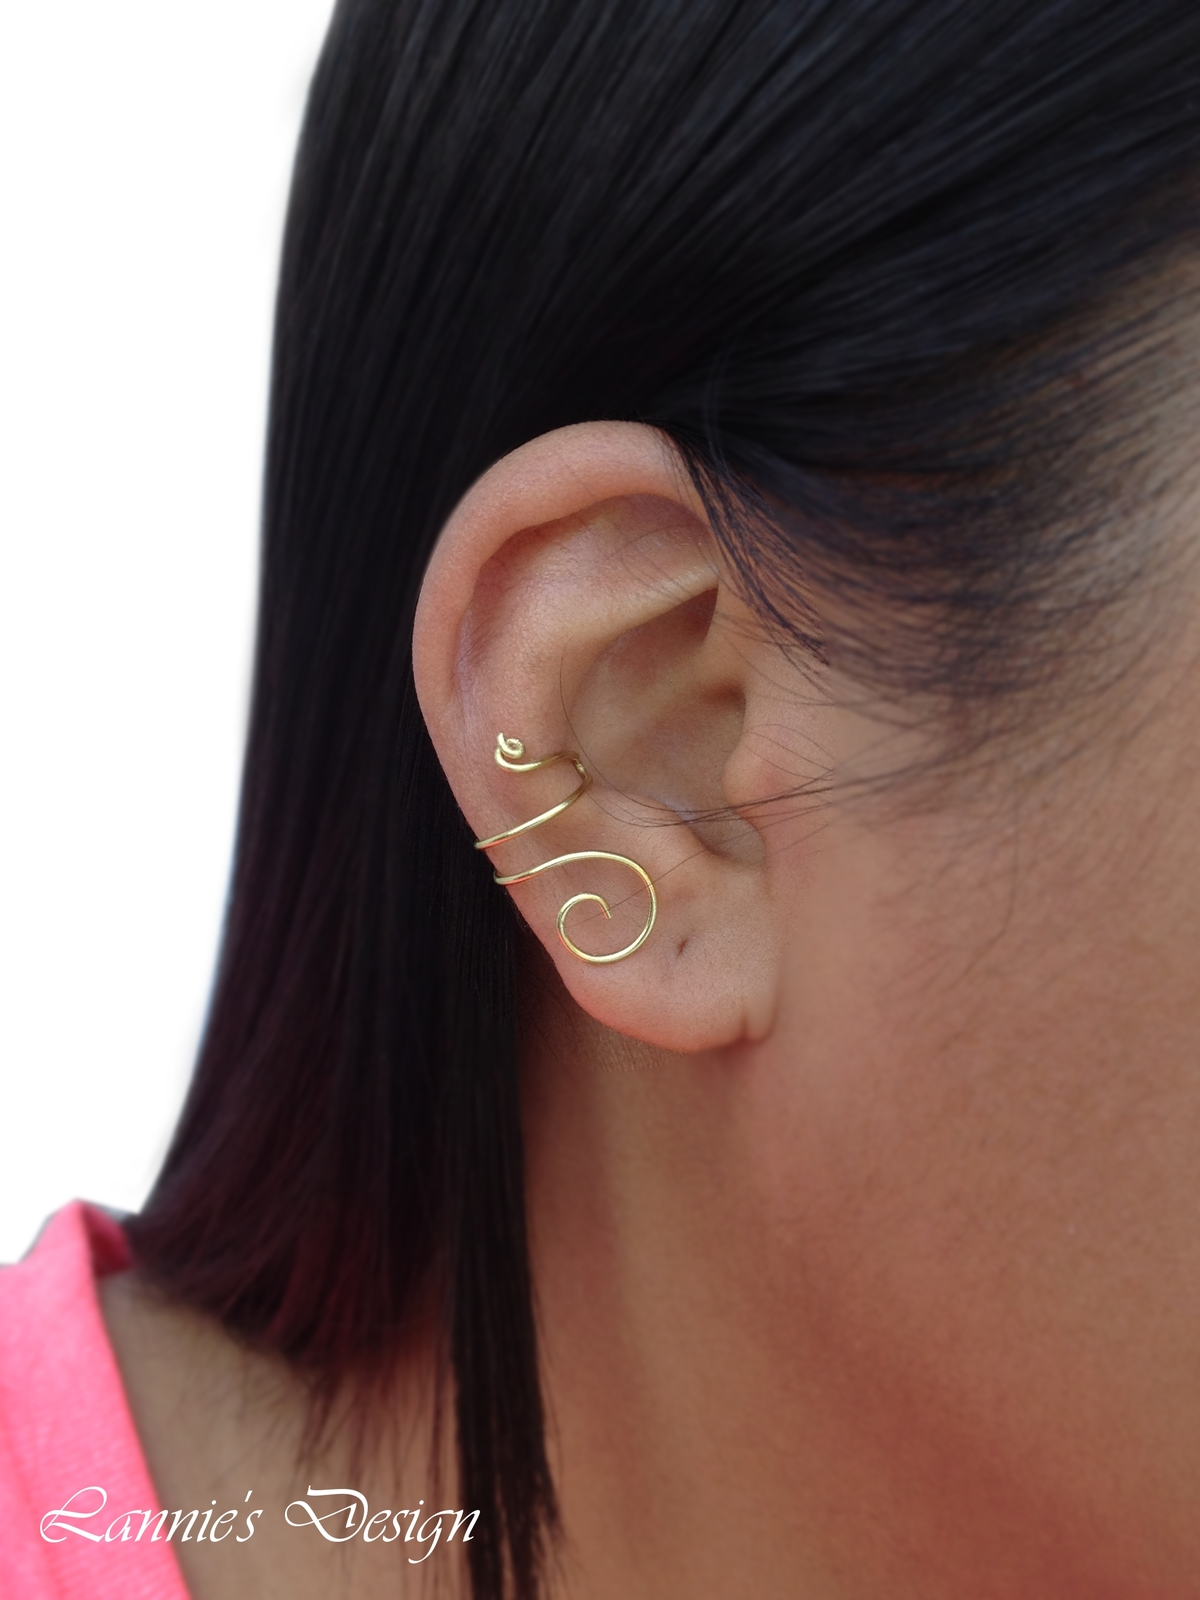 Gray Wire Ear Cuff, No Piercing Simple Cartilage Earrings